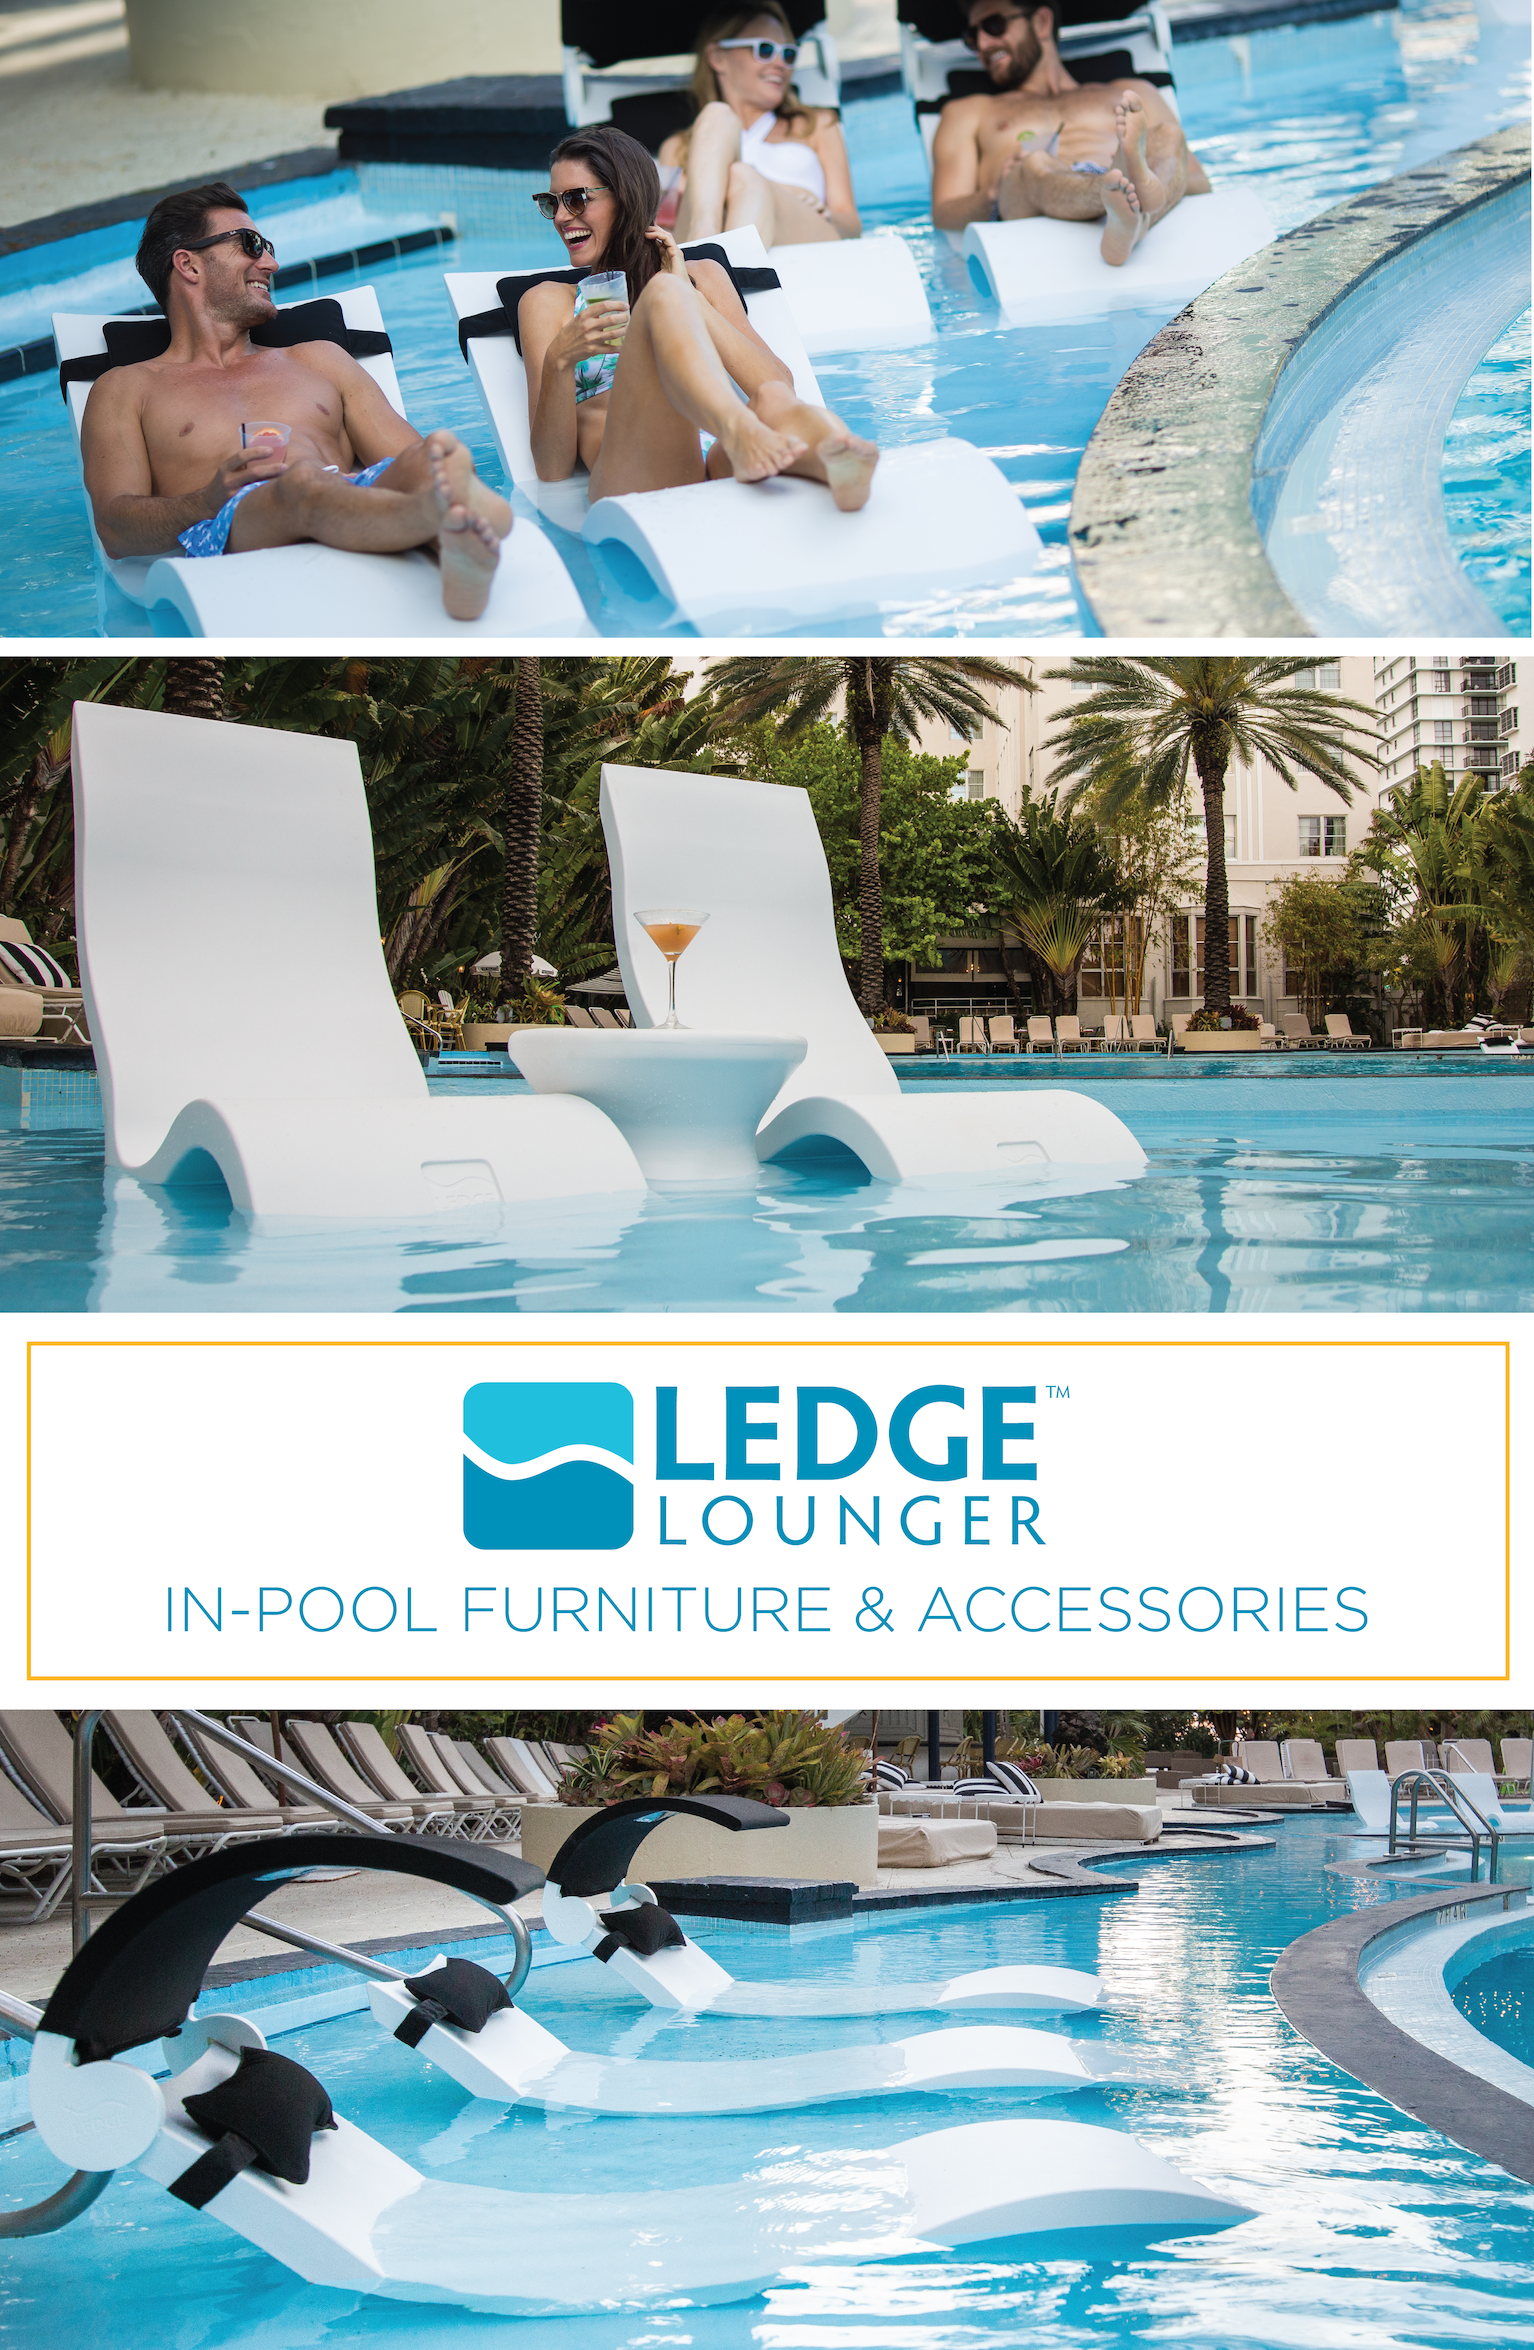 Ledge Lounger In Pool Furniture Is Designed For In Water Use On Your Pool S Tanning Ledge Stylish Durable And High Pool Umbrellas Pool Tanning Pool Remodel